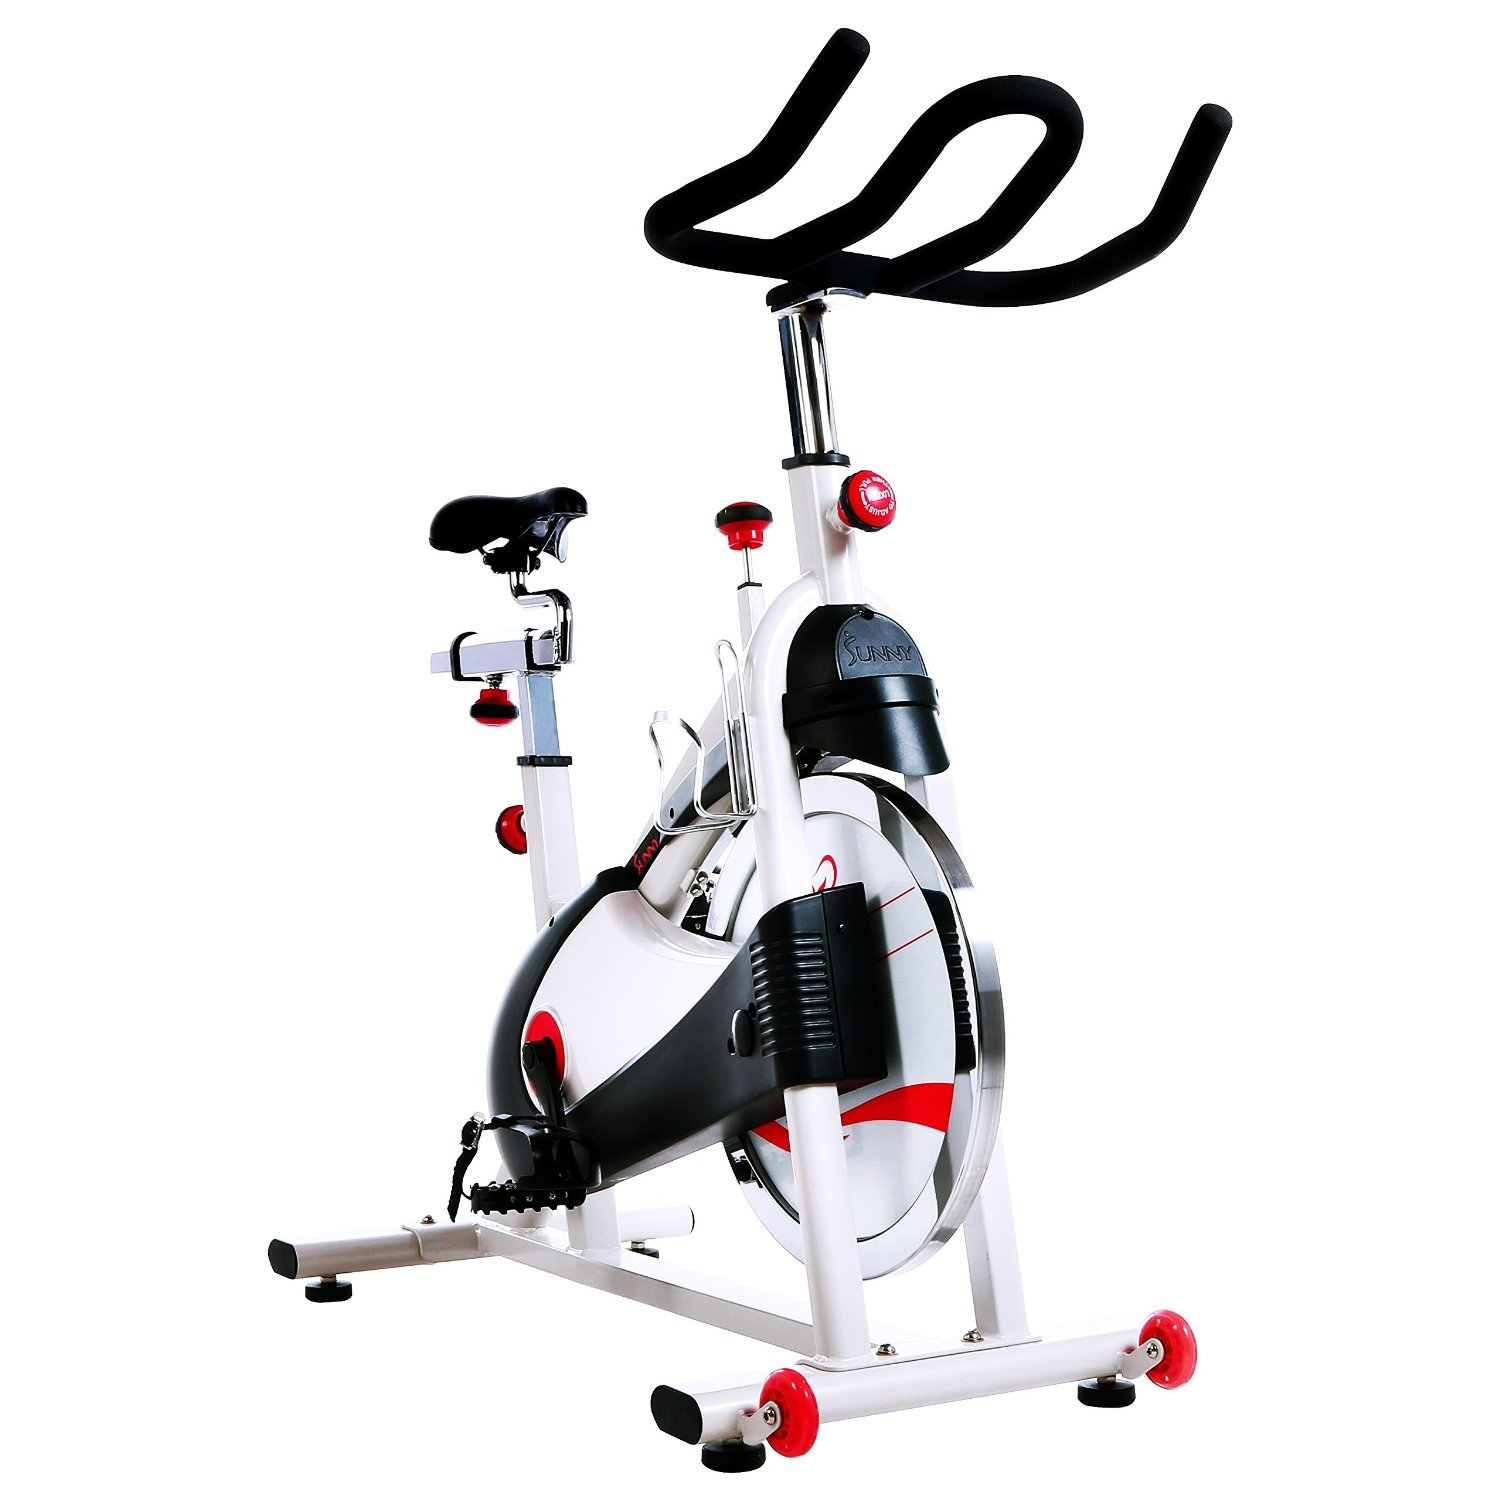 Belt Drive Premium Indoor Cycling Exercise Bike by Sunny Health & Fitness